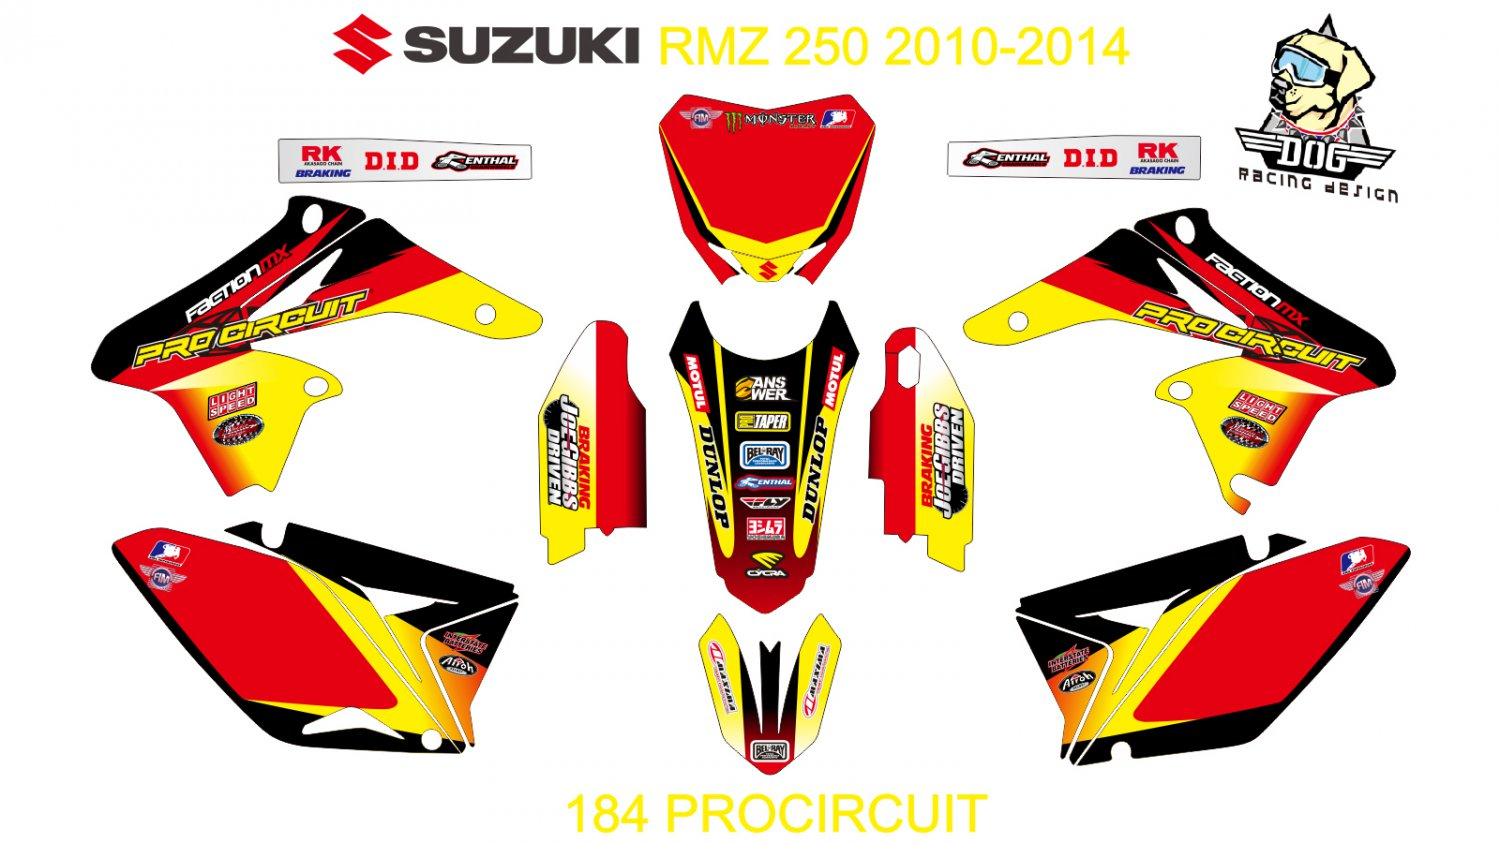 SUZUKI RMZ 250 2010-2014 GRAPHIC DECAL KIT CODE.184